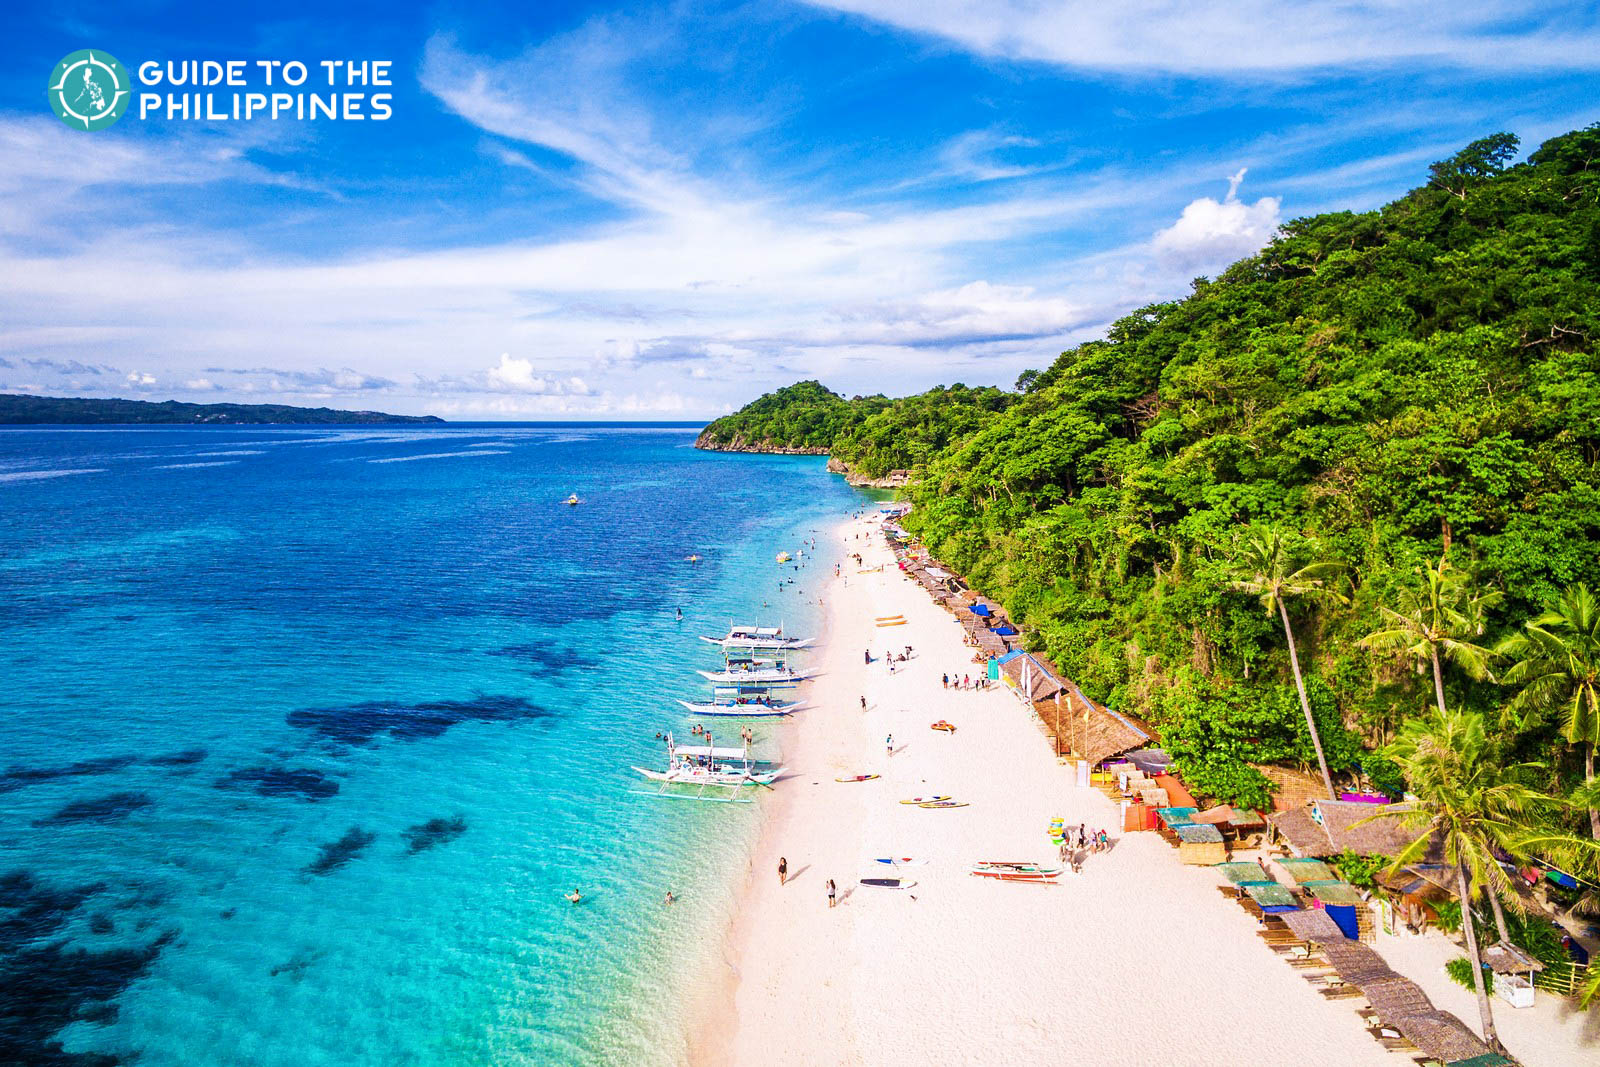 10 Most Beautiful Beach Resorts in the Philippines